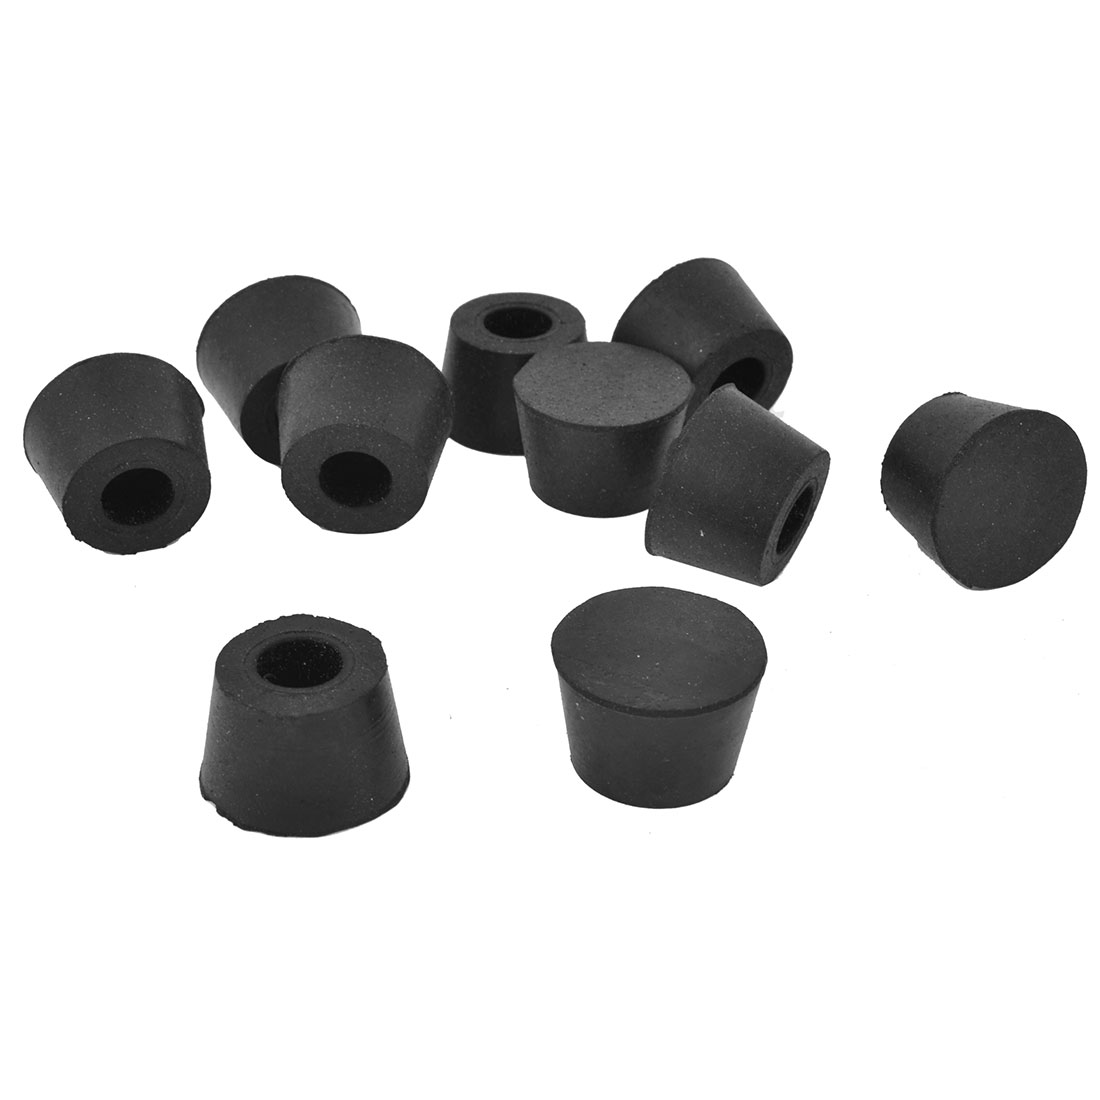 23mm Dia Black Rubber Table Chair Feet Pads Tile Floor Protectors 10pcs